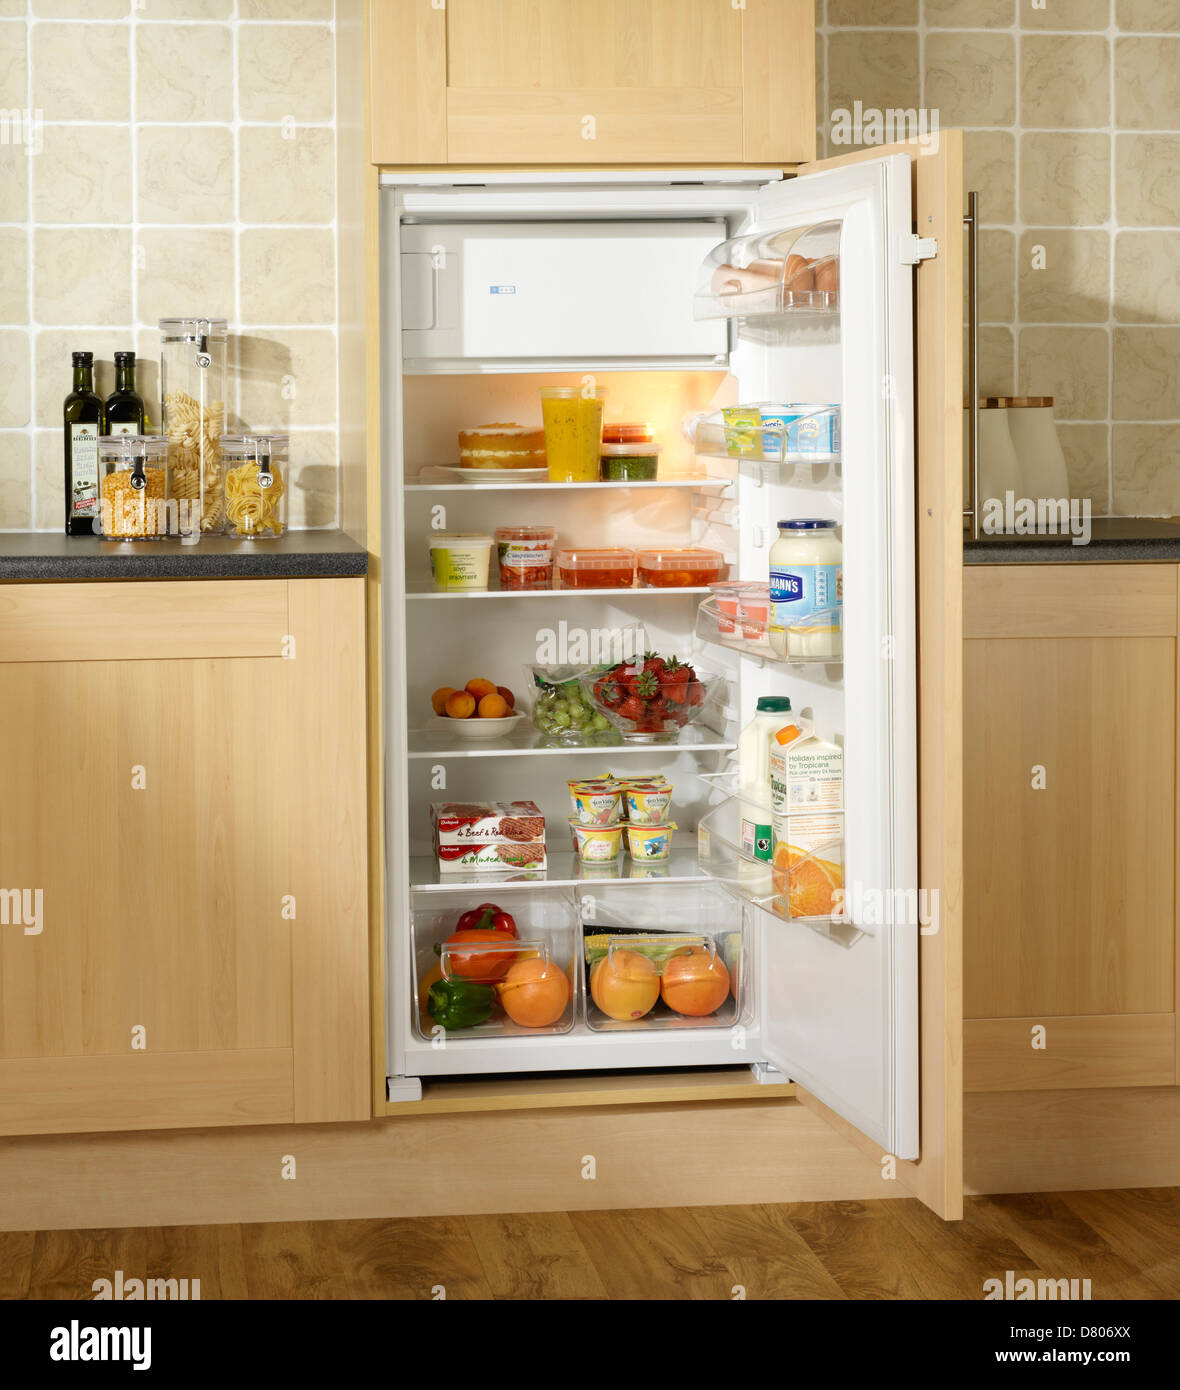 Chilled Food In A Built In Fridge With Small Freezer In